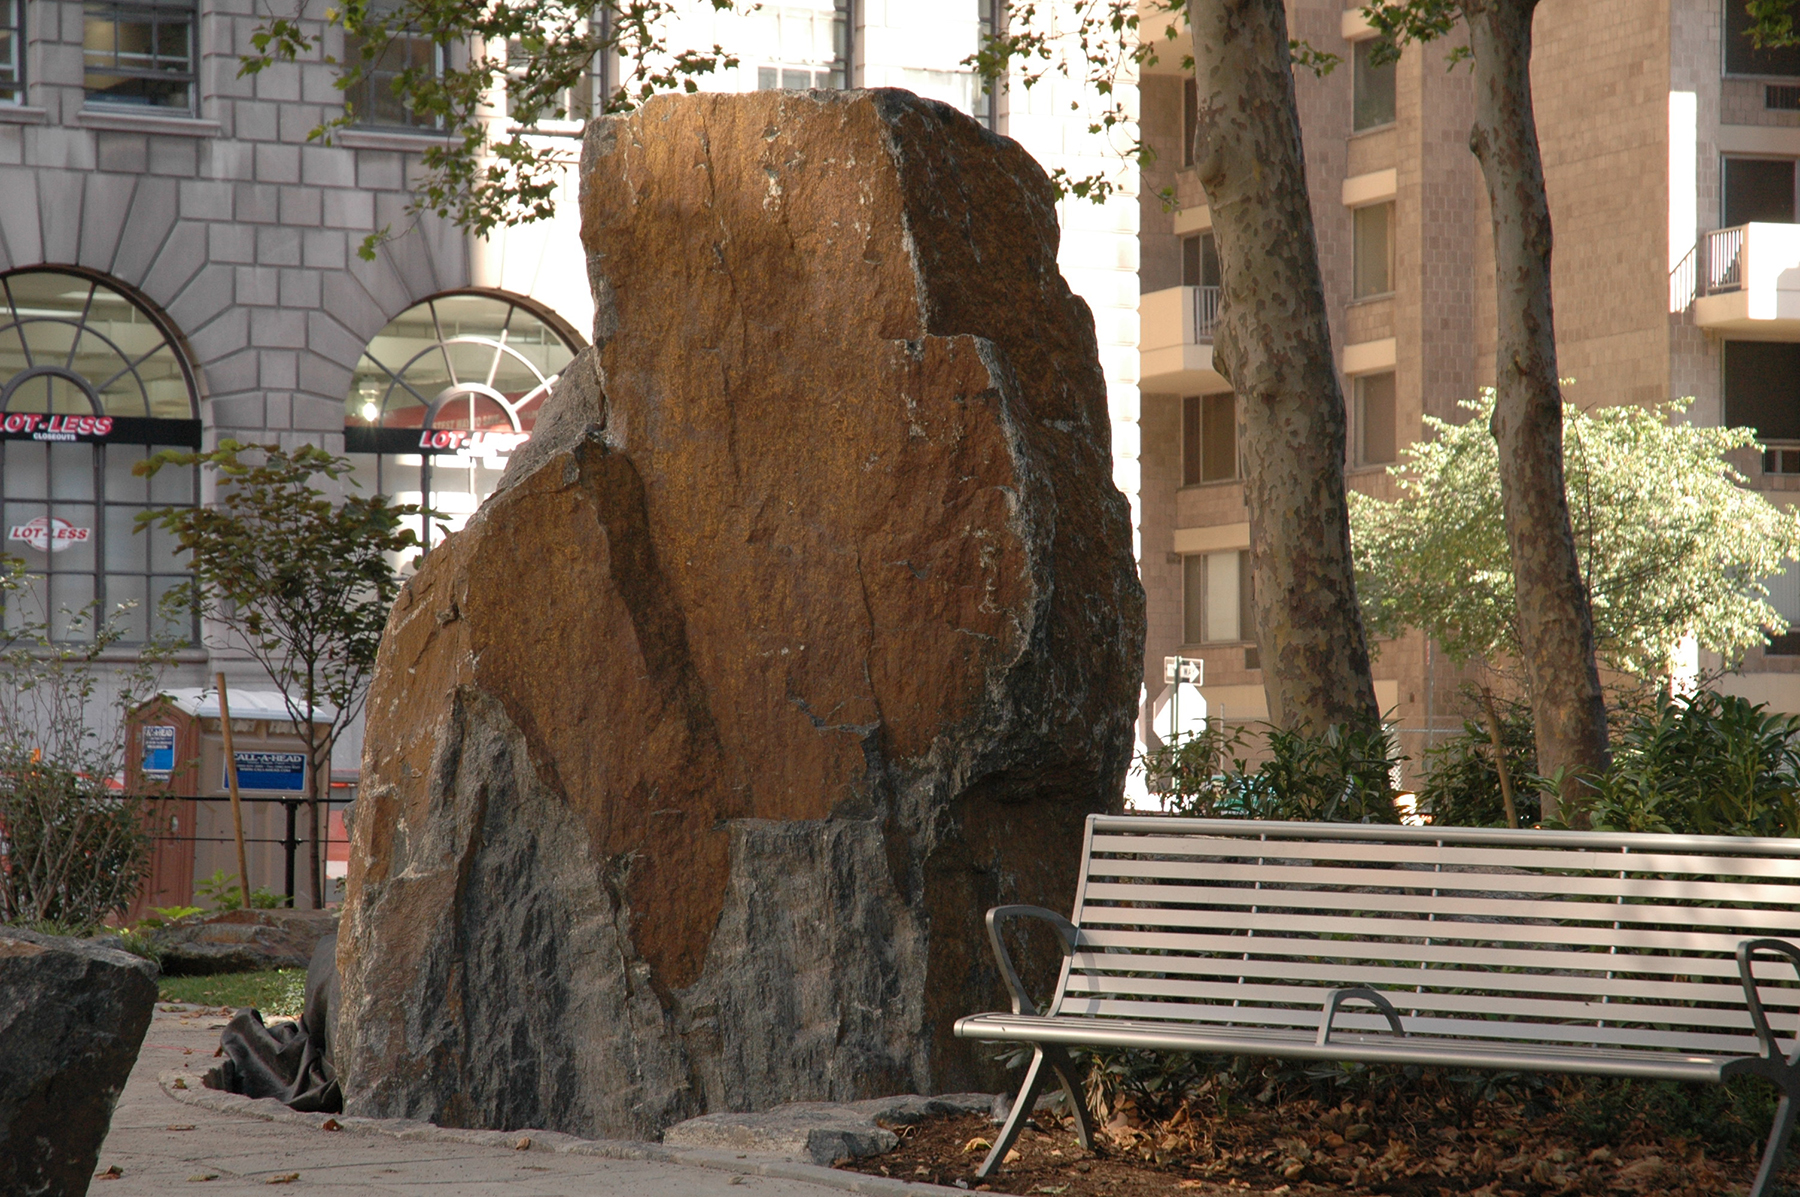 Large stone in park near bench